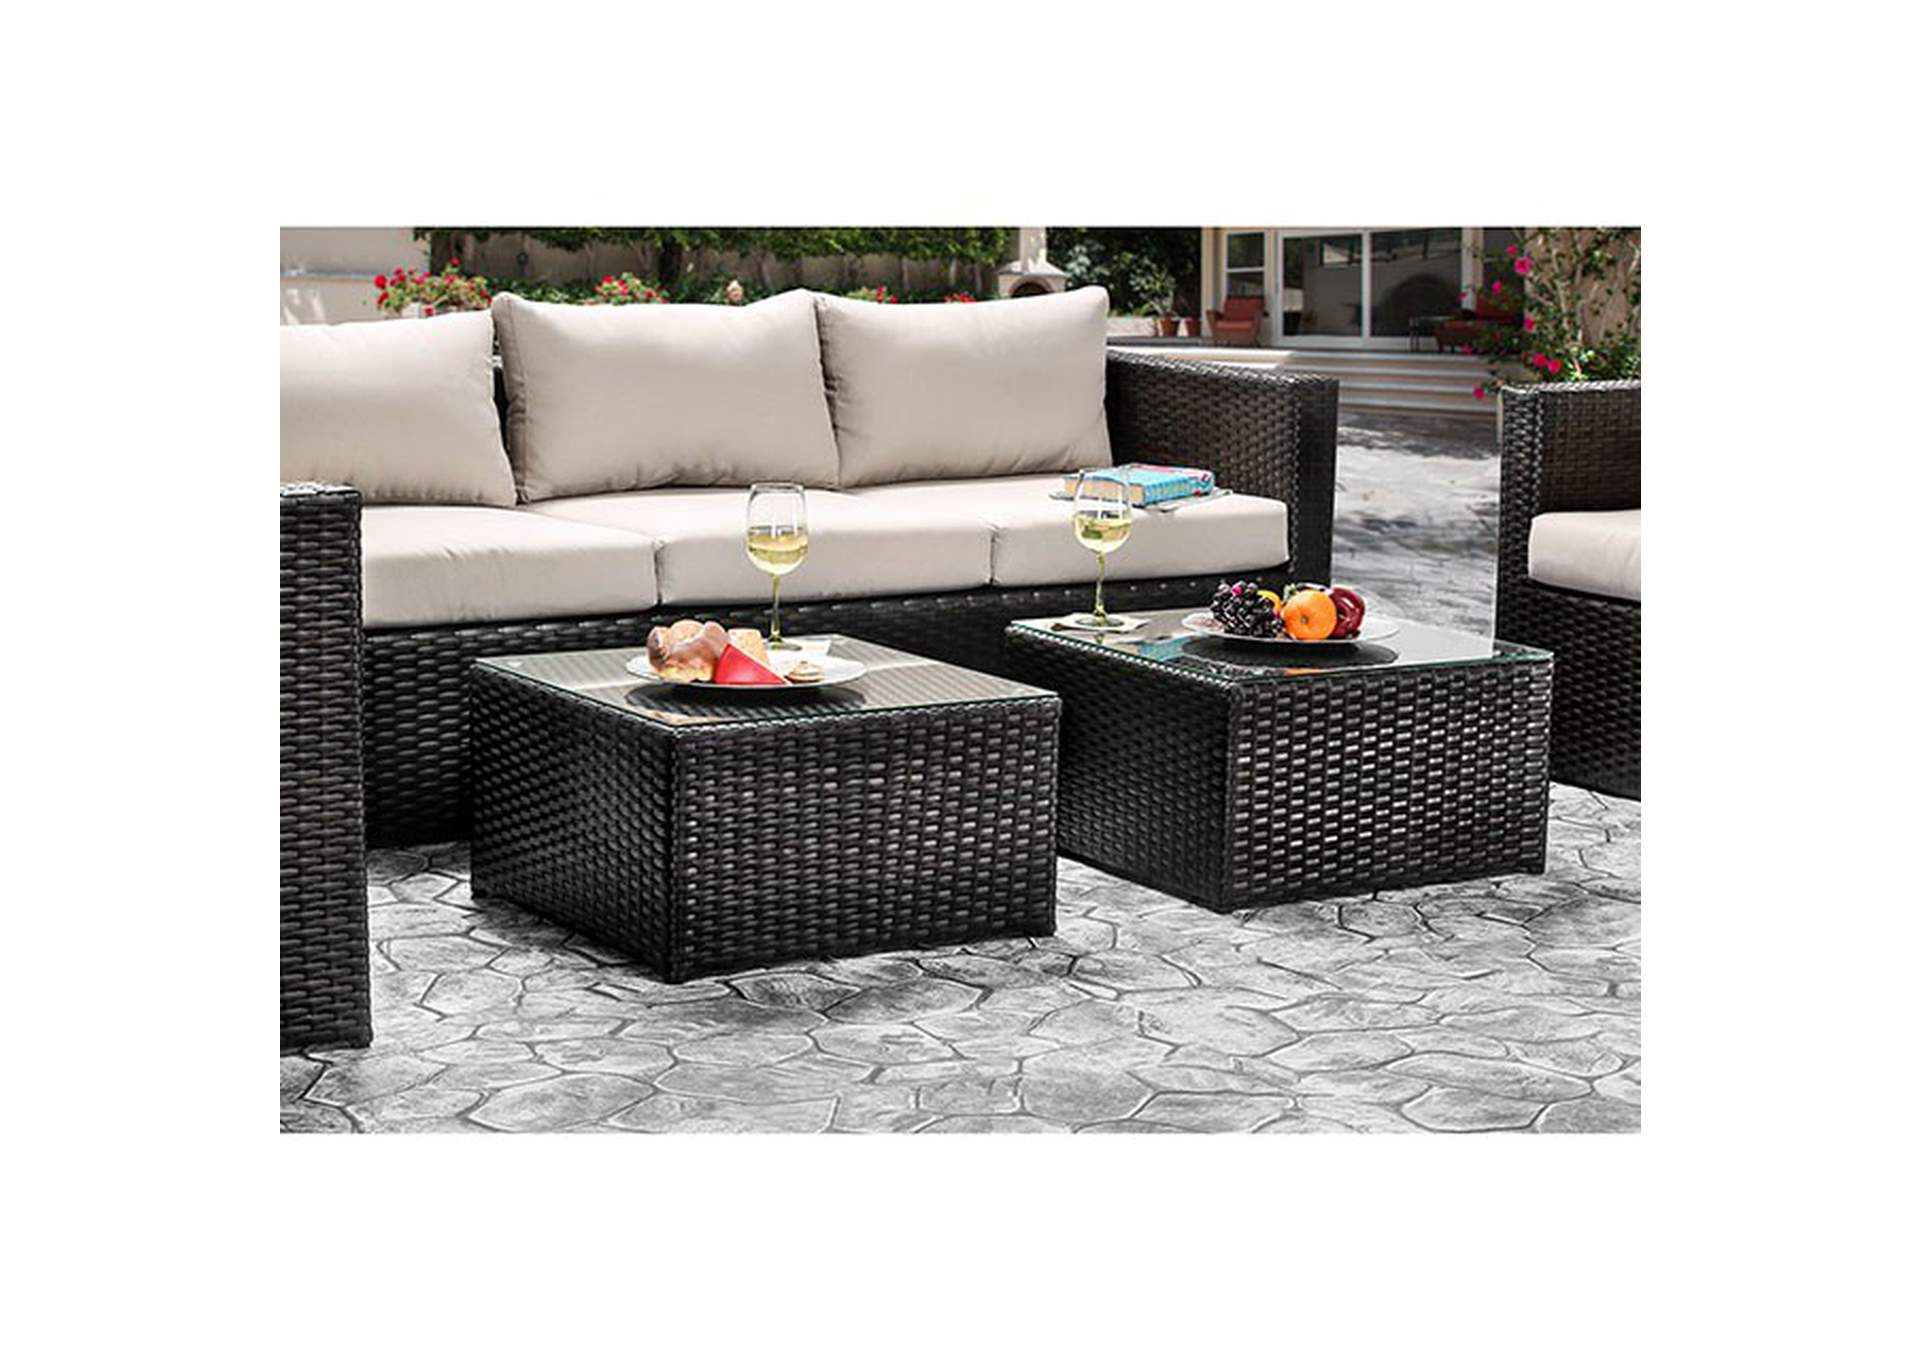 Olina Beige Patio Sofa Set,Furniture of America